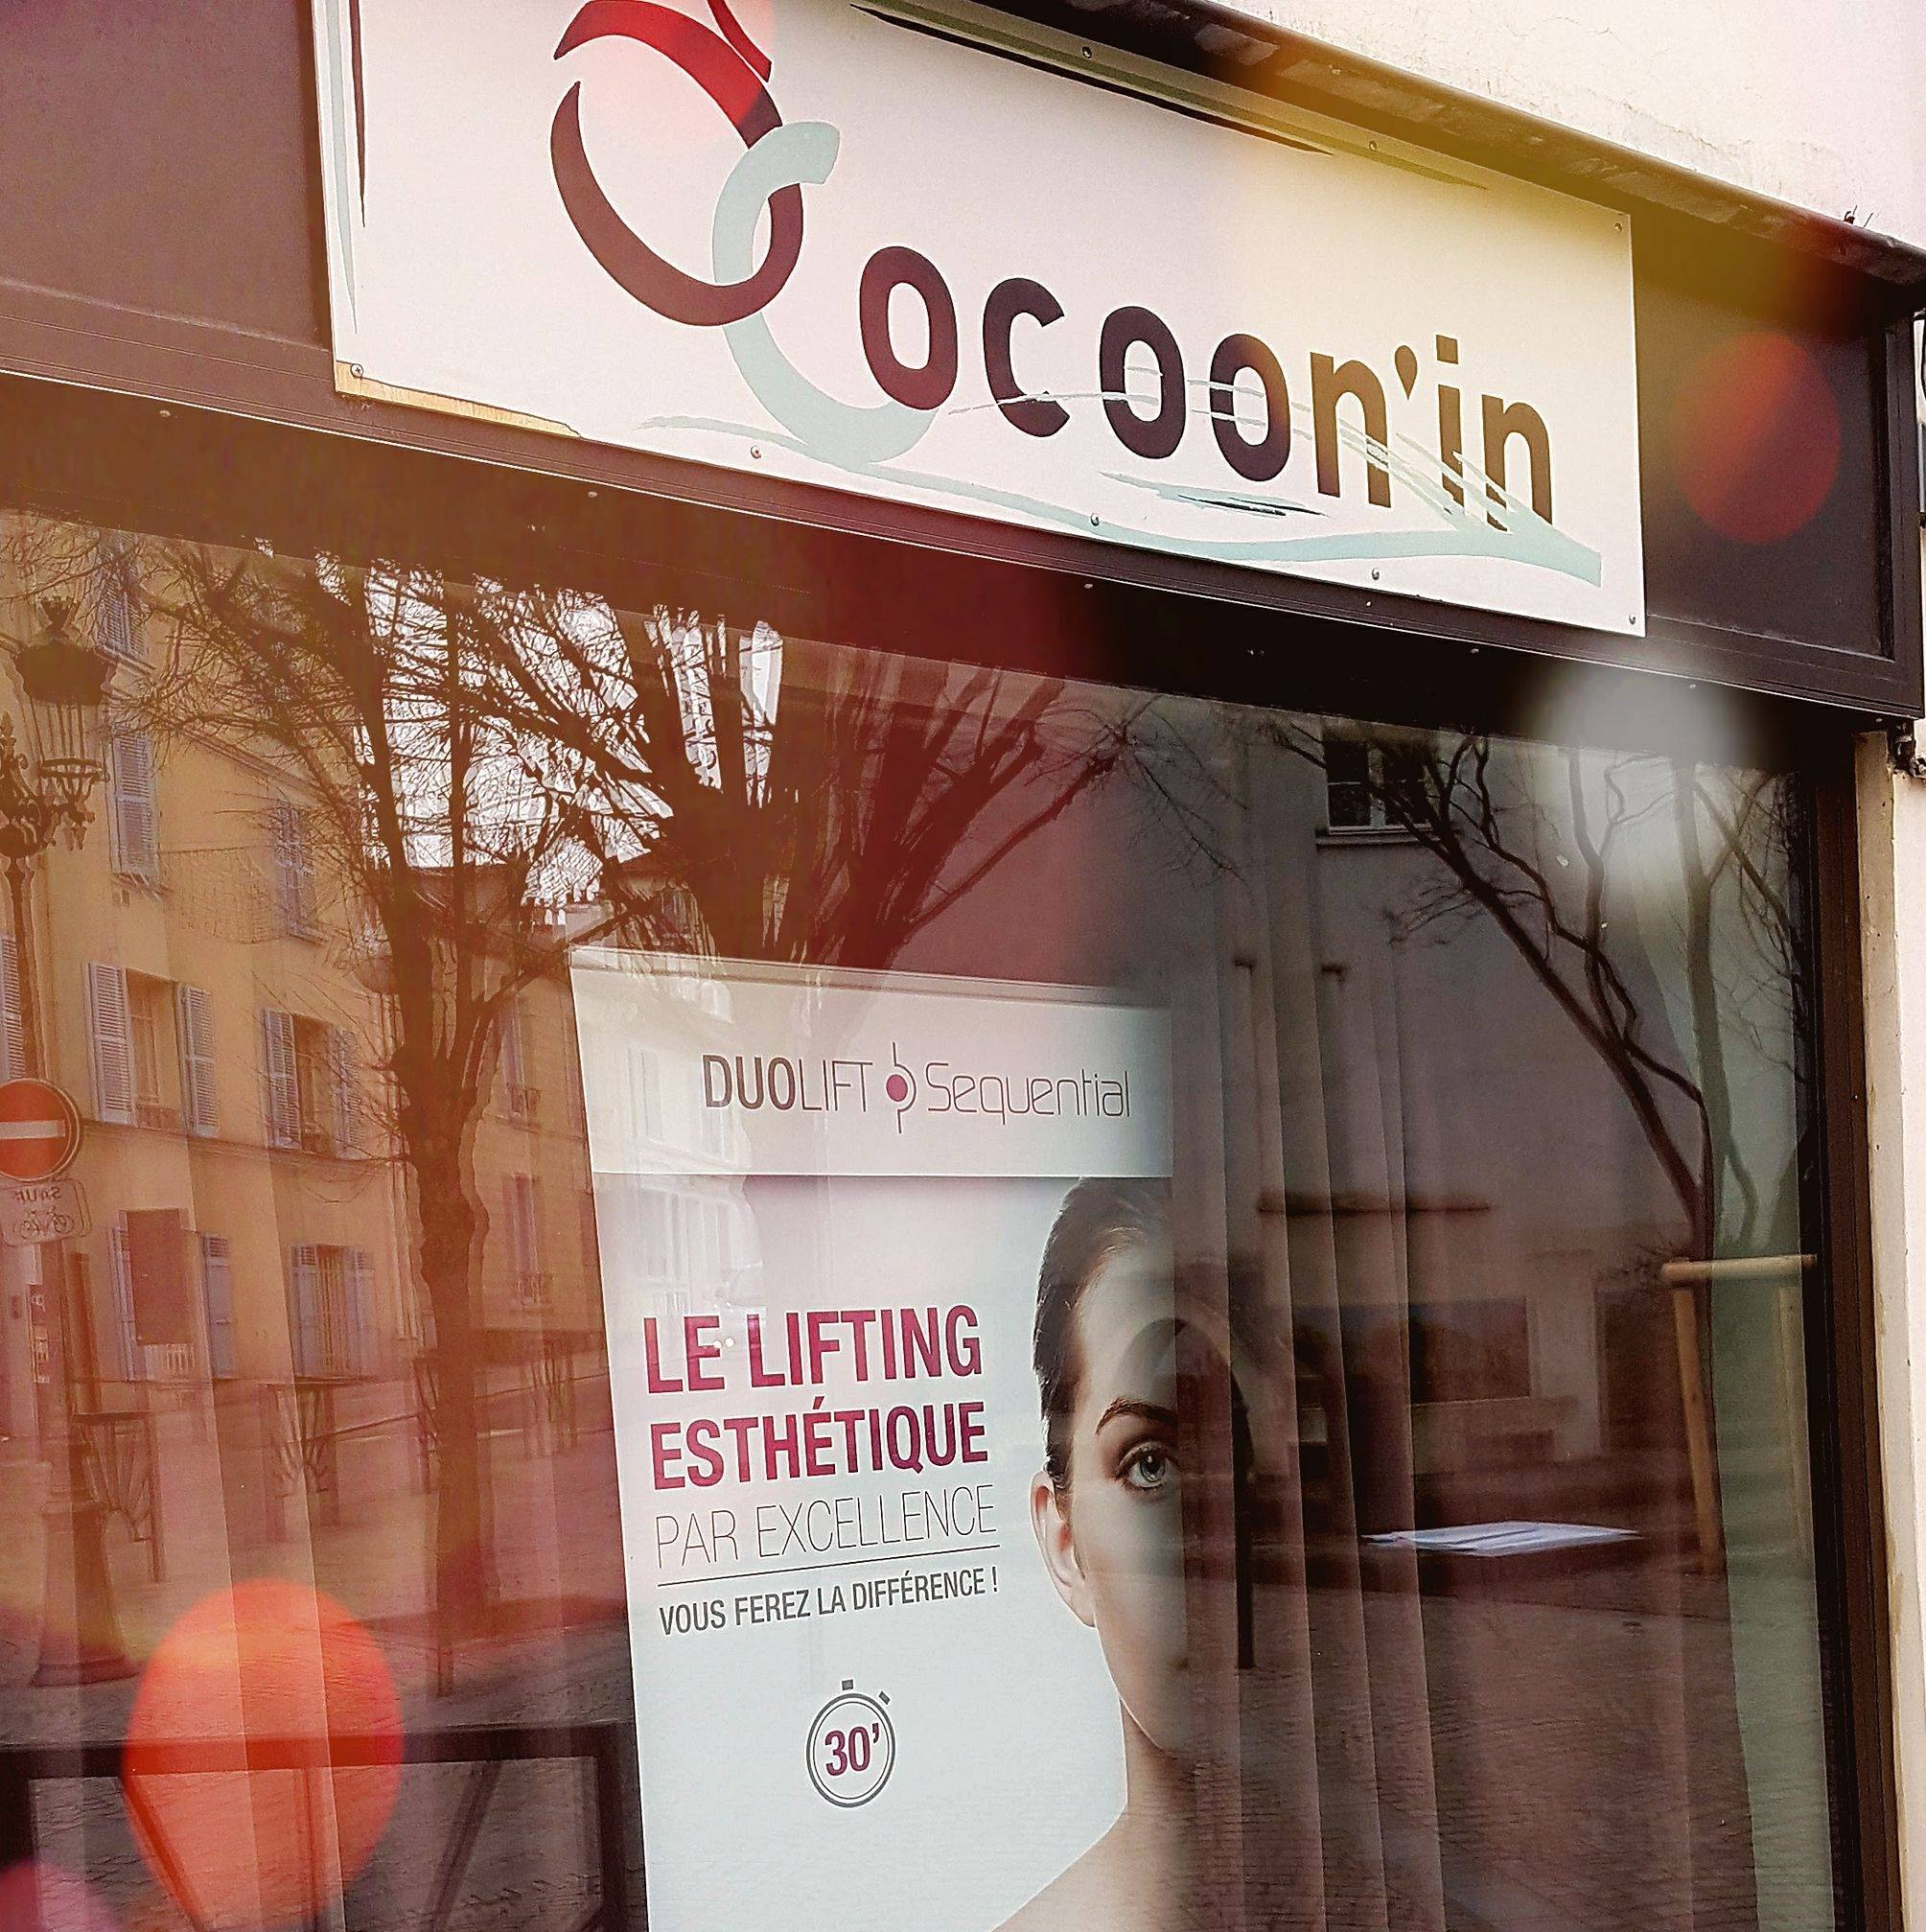 O Cocoon In